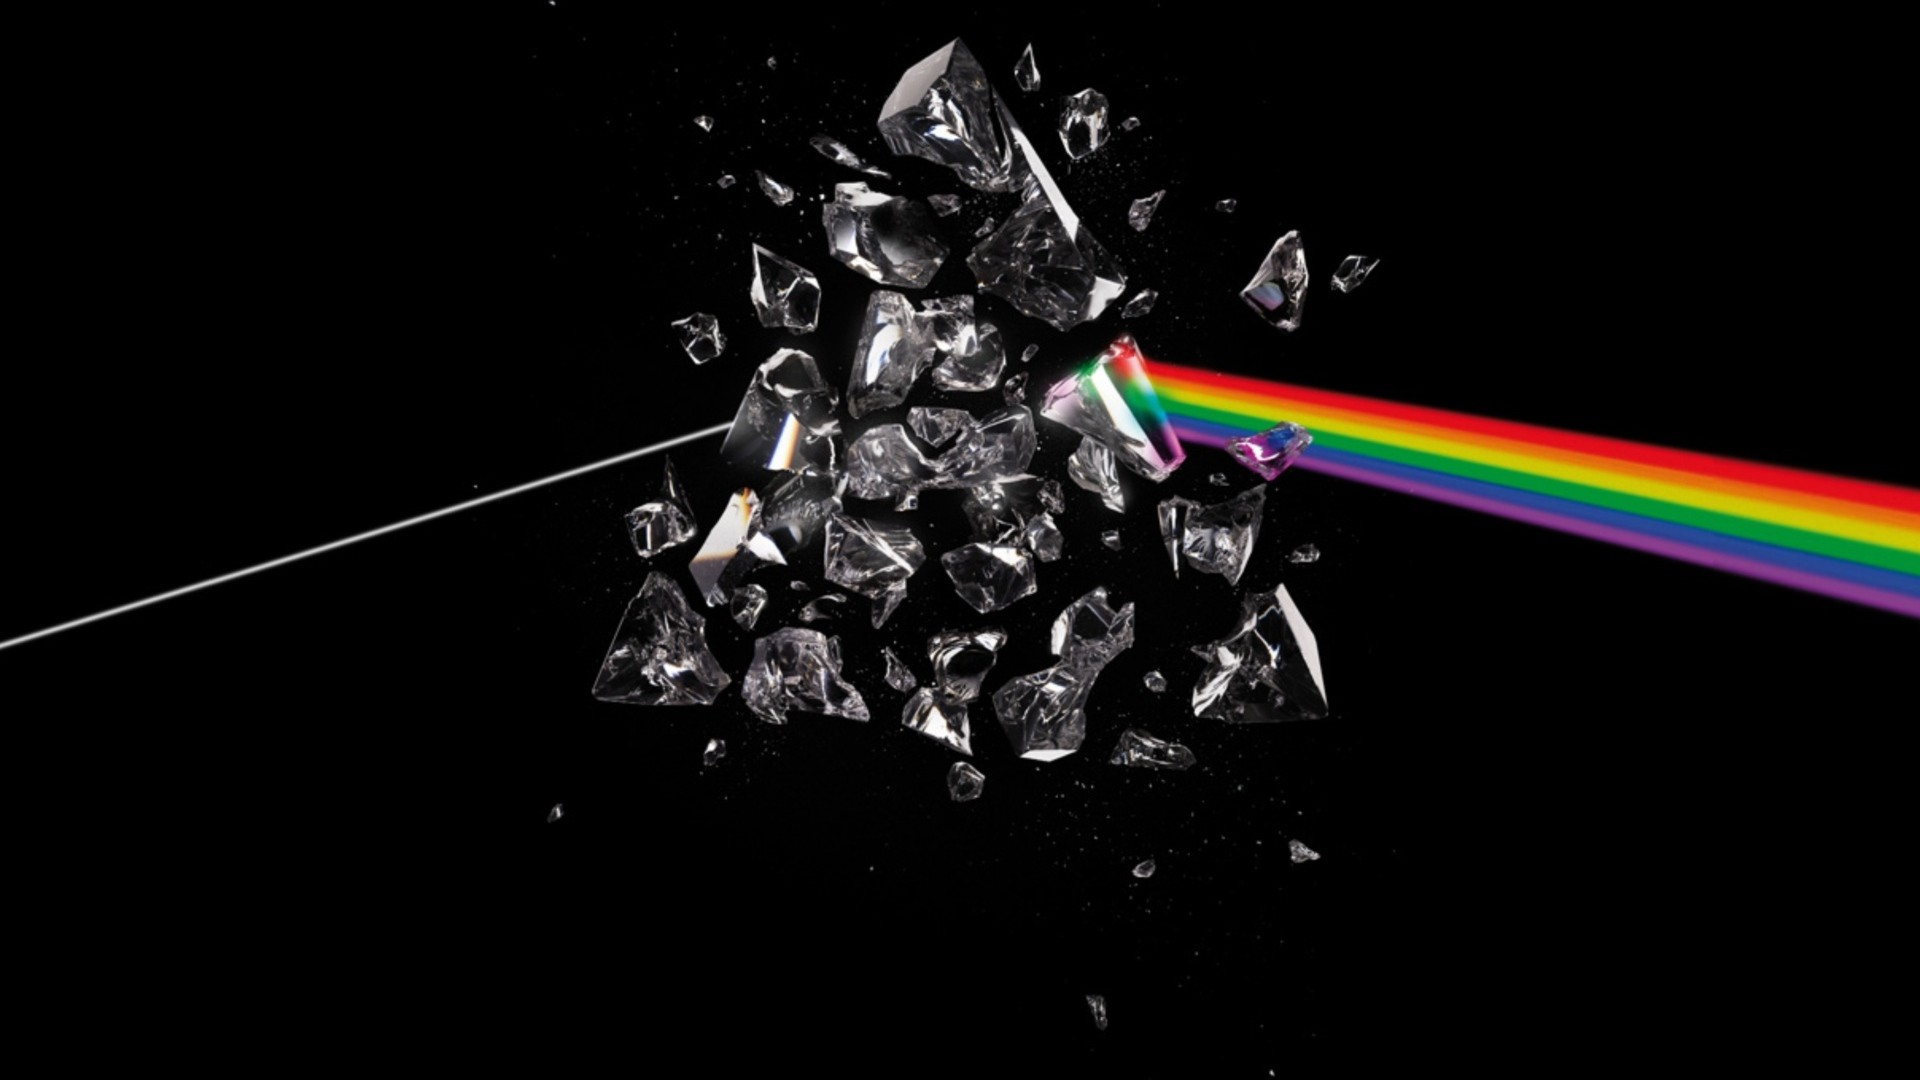 1920x1080 pink floyd, debris, rainbow, graphics, background Full HD 1080p .